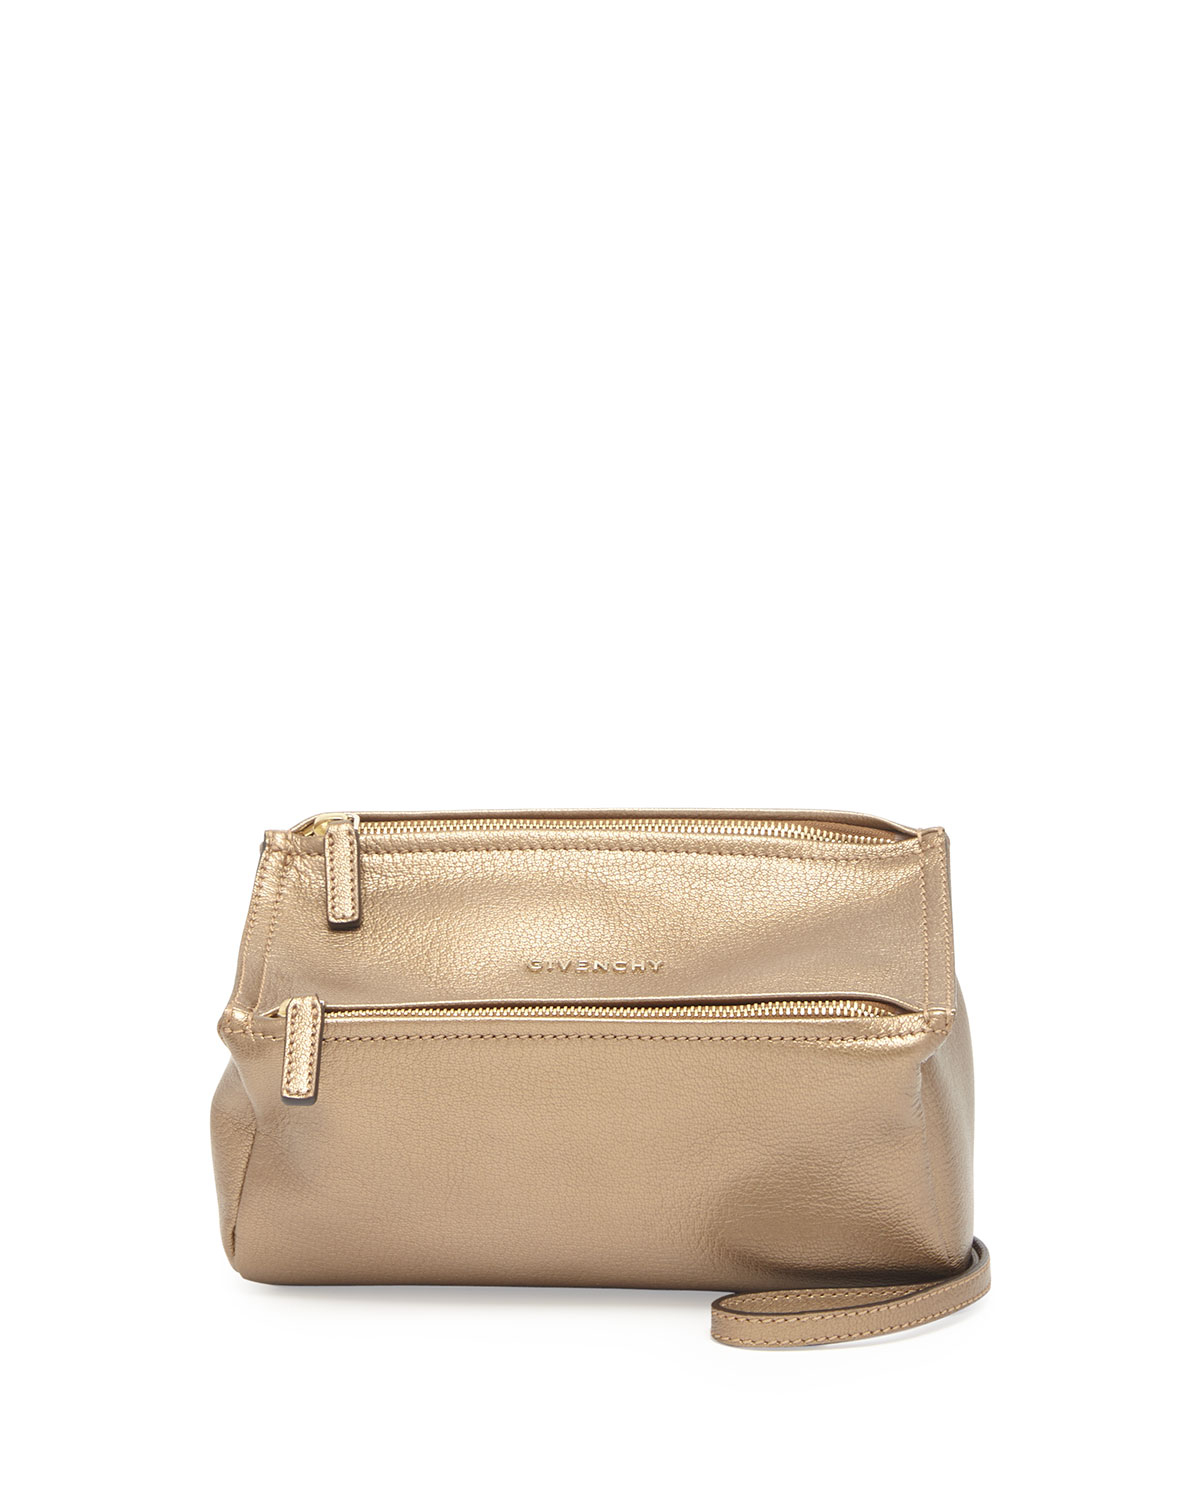 bff8853481 Lyst - Givenchy Pandora Mini Leather Crossbody Bag in Natural